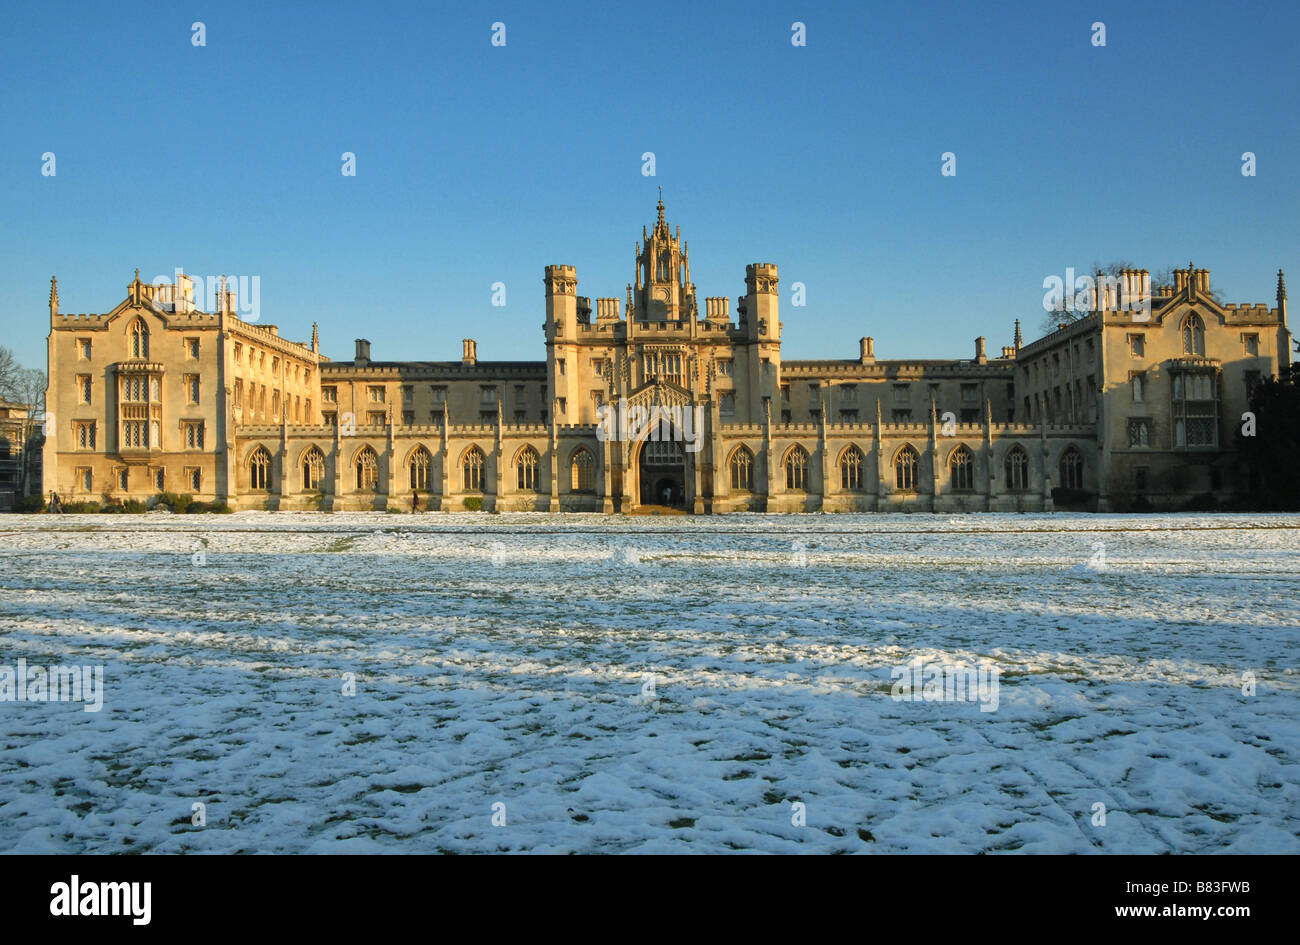 The New Court of St John's College Cambridge after a winter snowfall - Stock Image